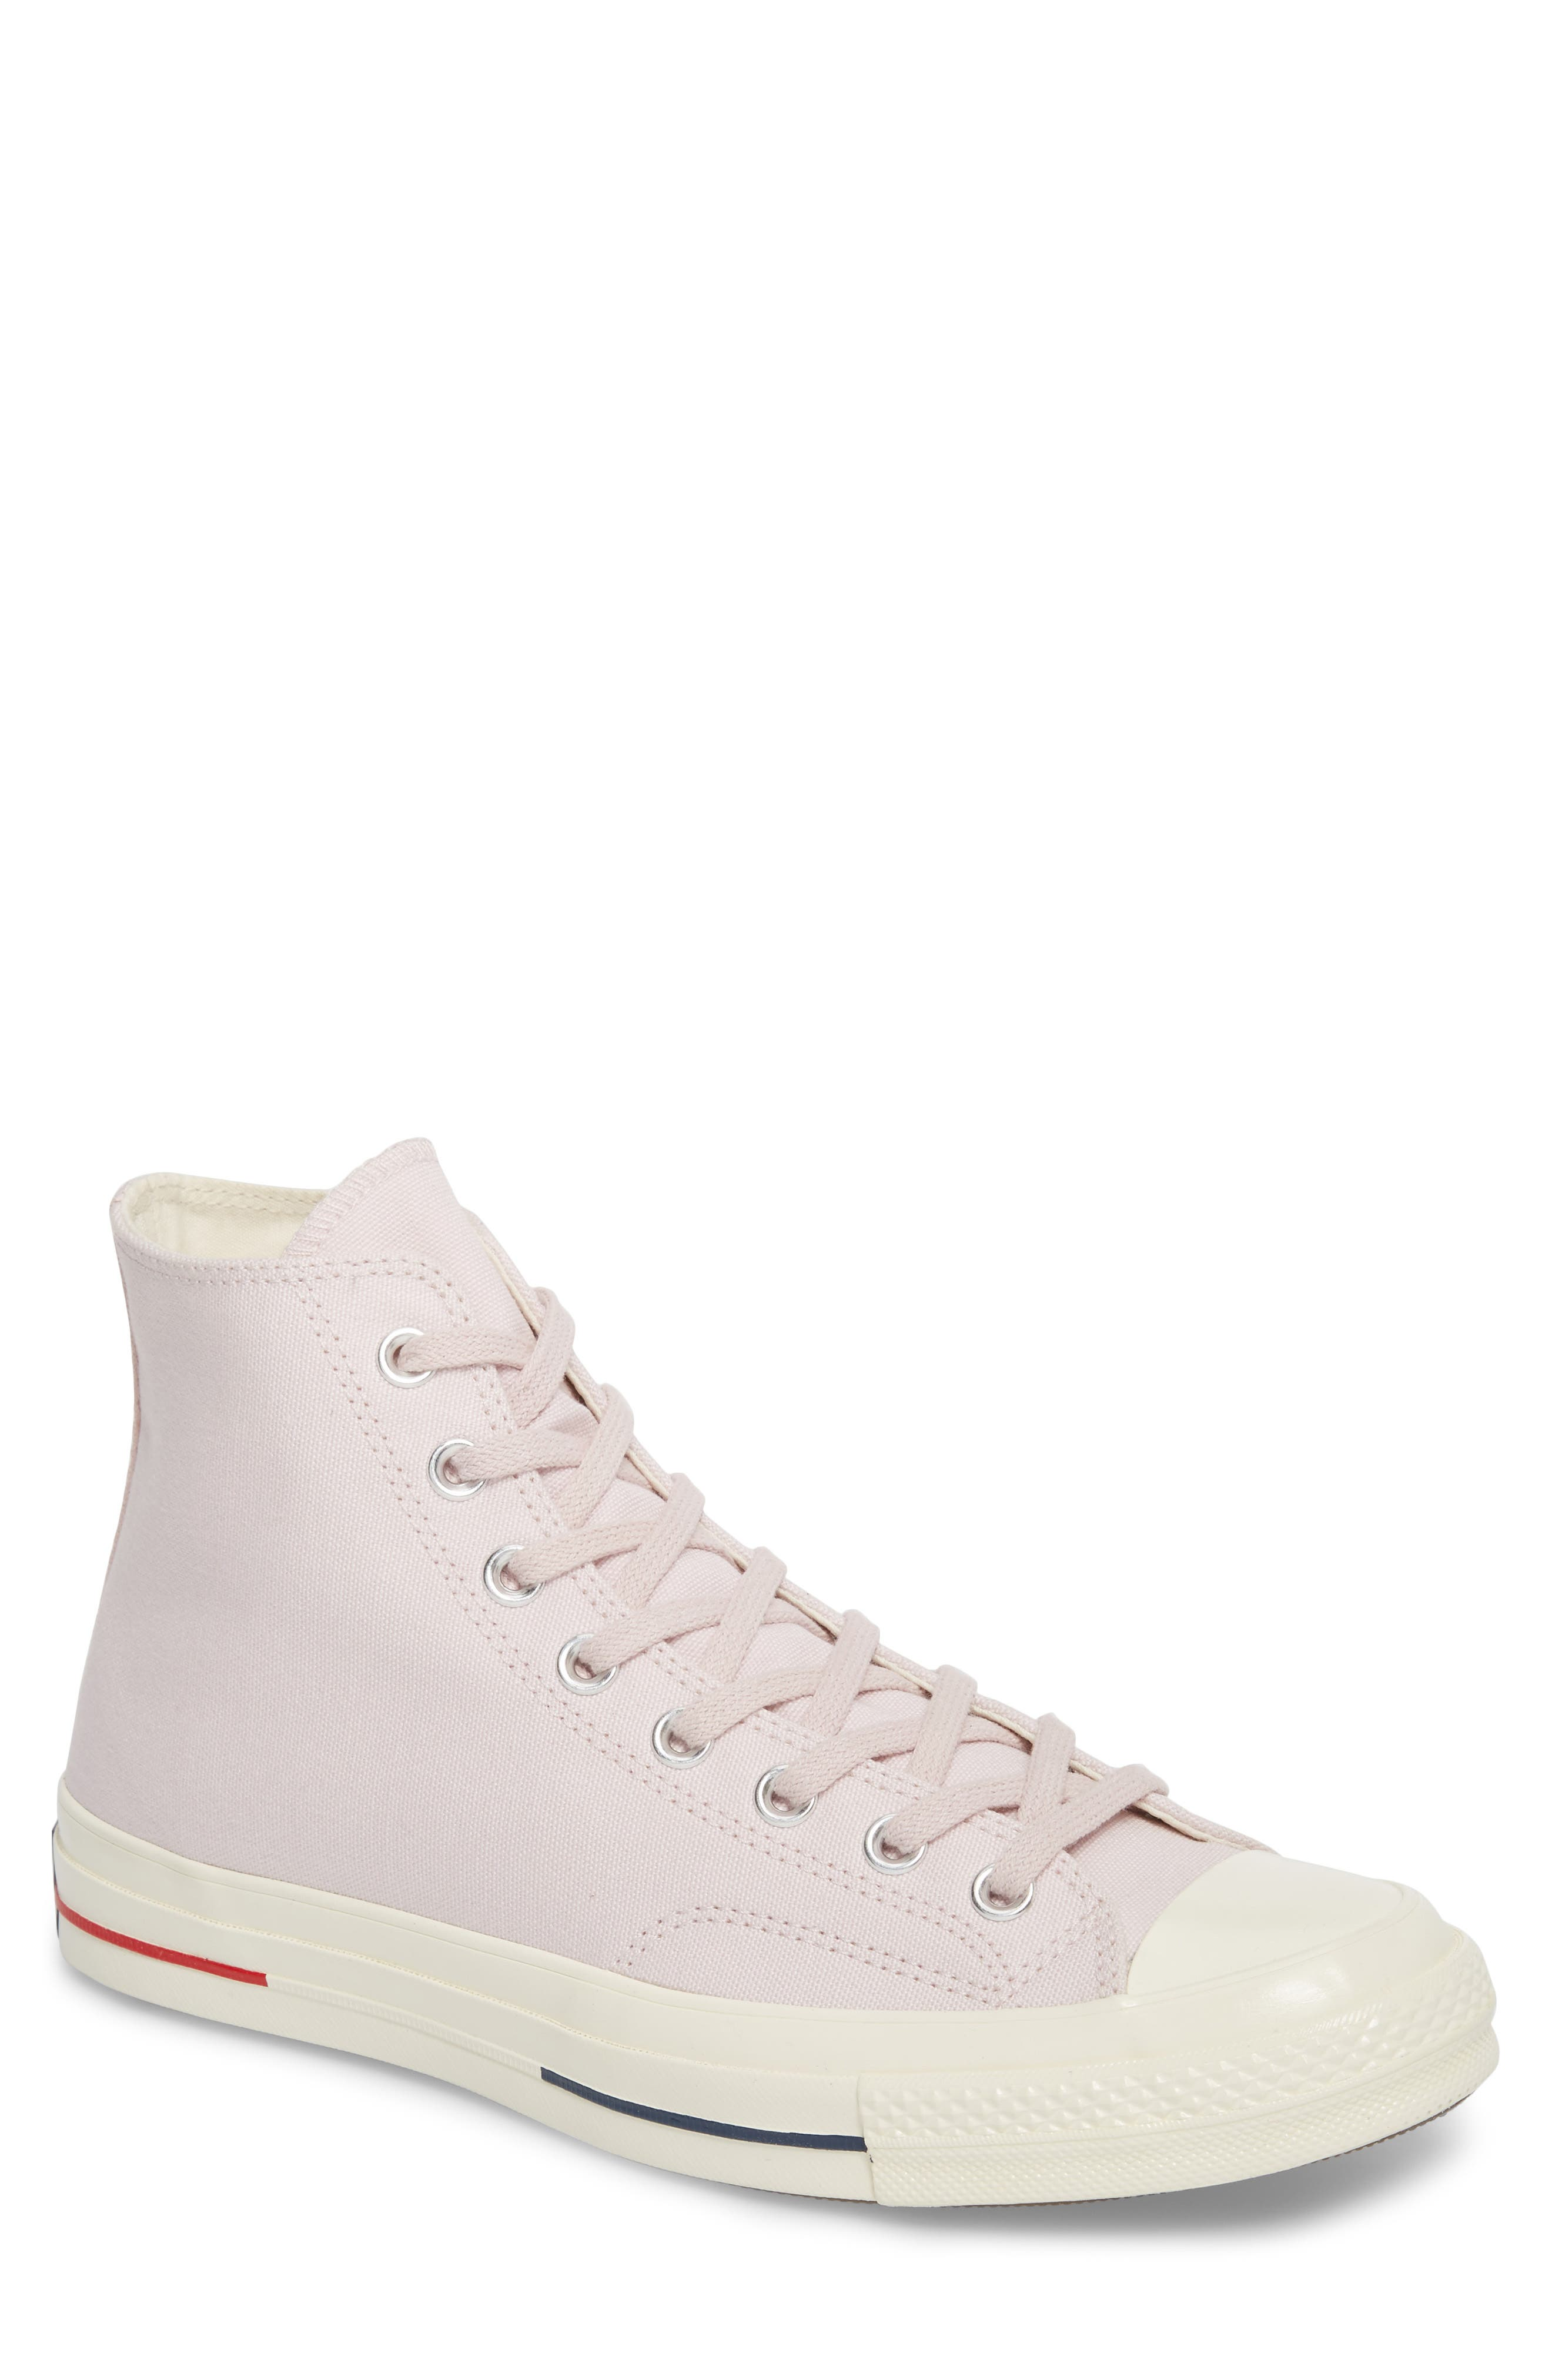 Chuck Taylor<sup>®</sup> All Star<sup>®</sup> '70 Heritage High Top Sneaker,                         Main,                         color, 653